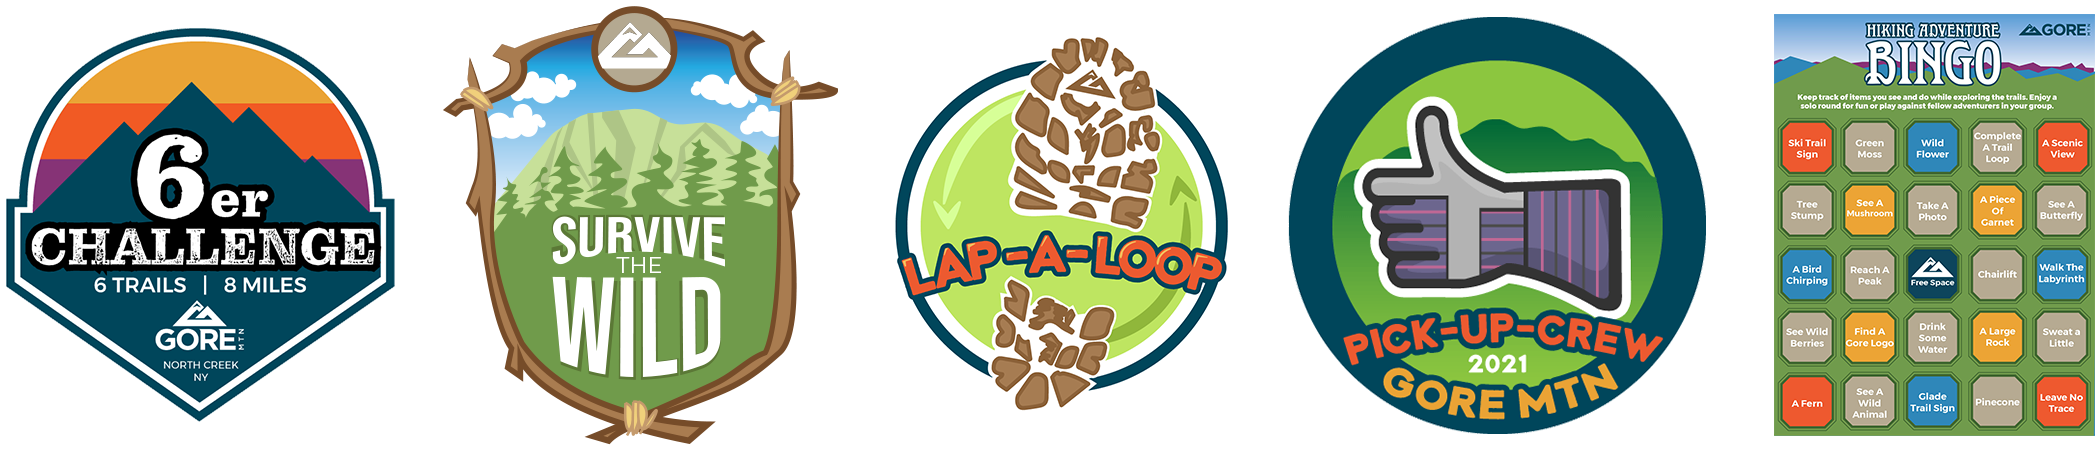 A Bunch Of Hiking Challenge logos